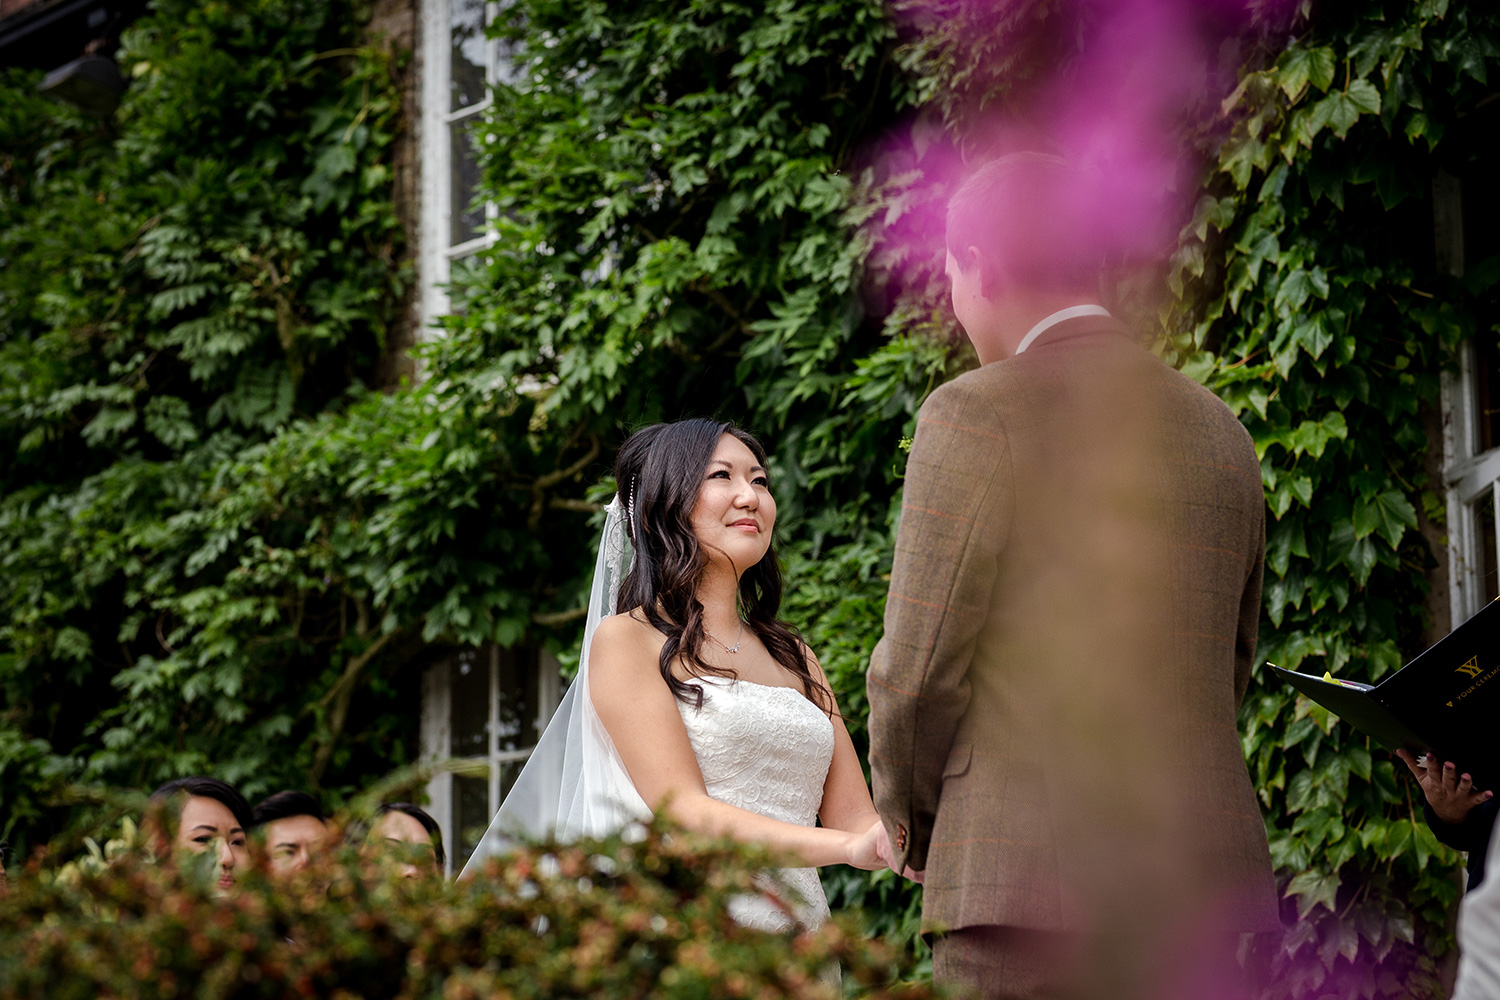 Outdoor ceremony at a Hilltop Country House Wedding